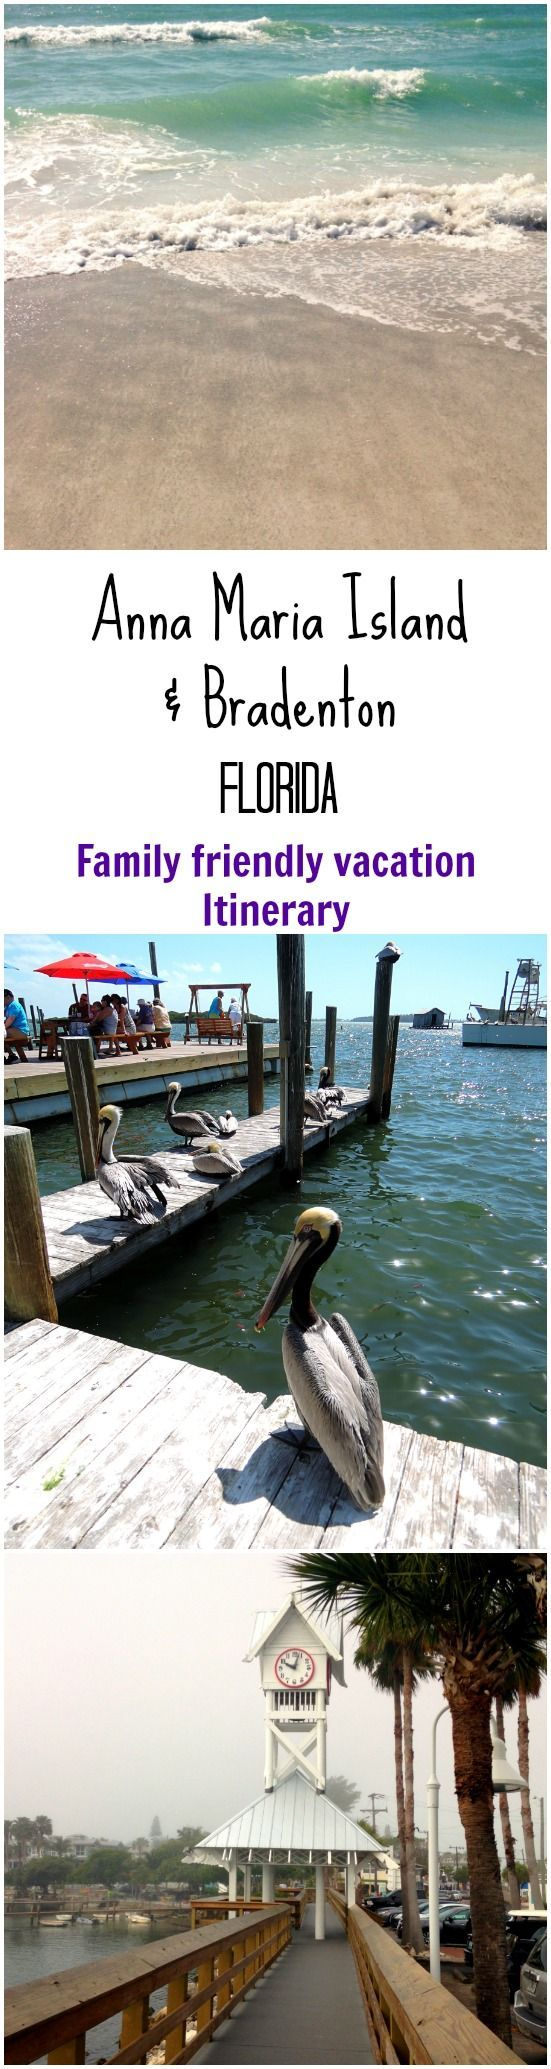 White sand, fresh seafood, blue beaches and a laid back island feel makes this the perfect family vacation.